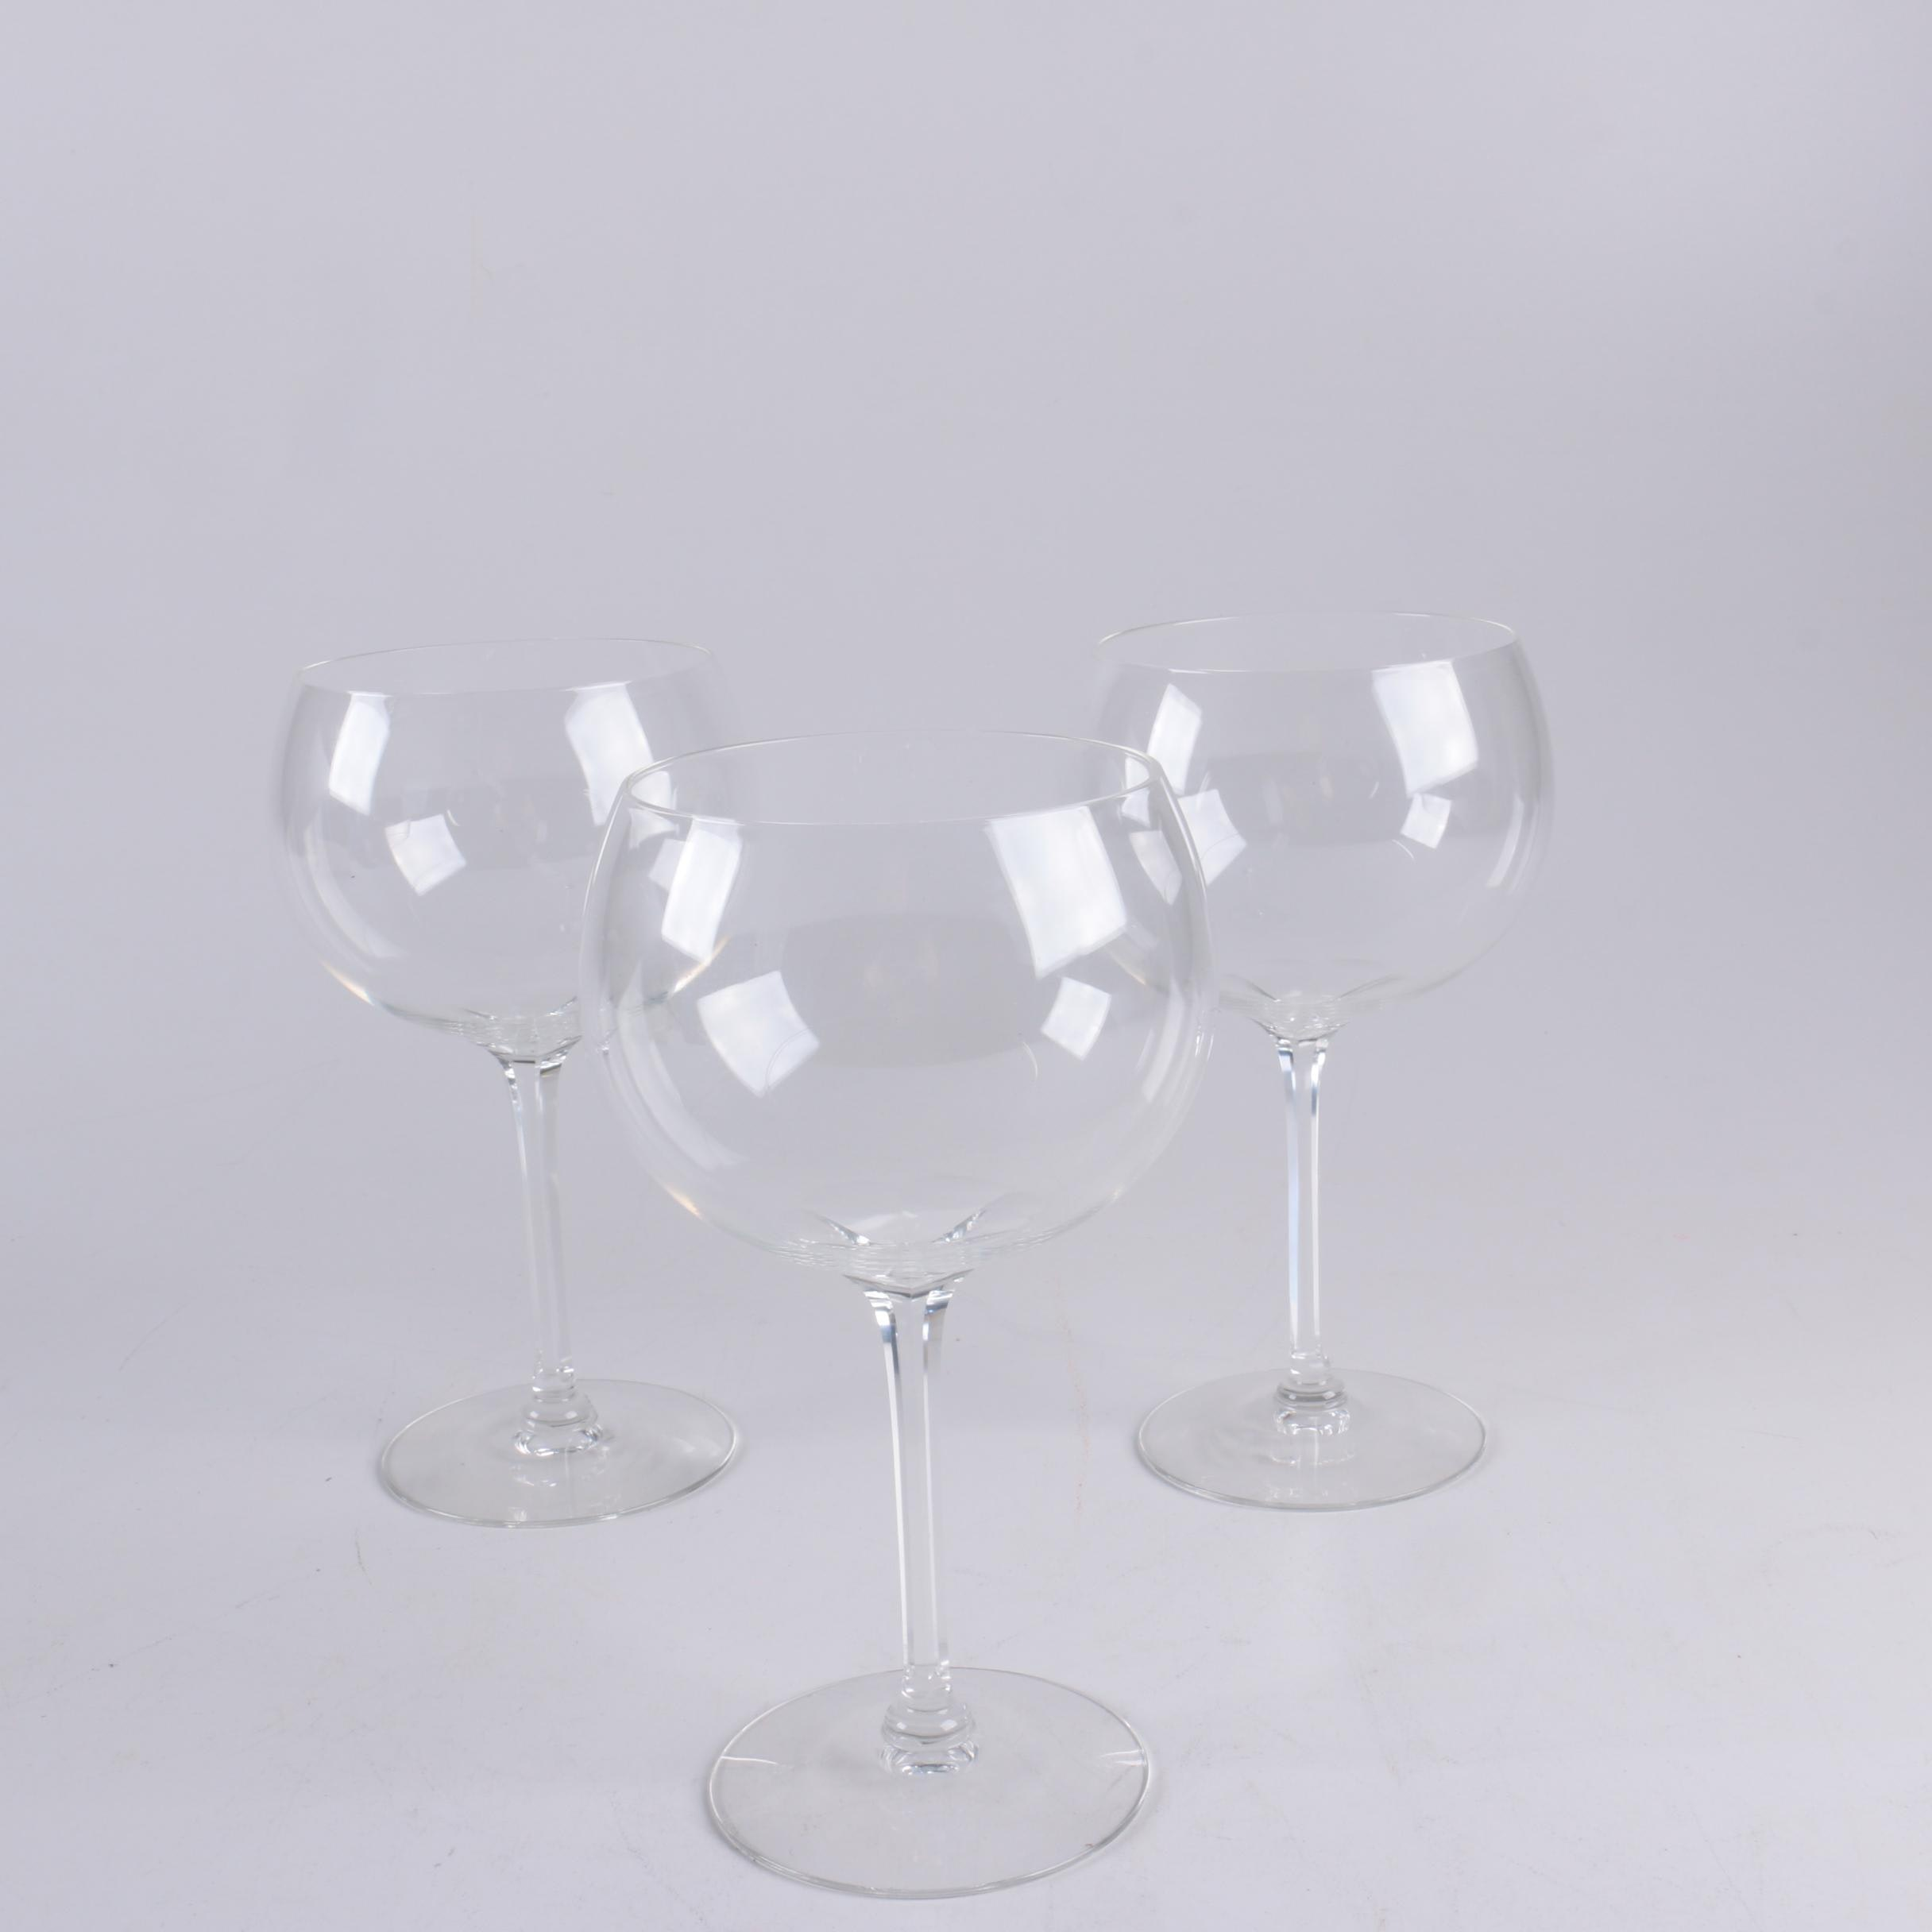 Cartier Balloon Wine Glasses